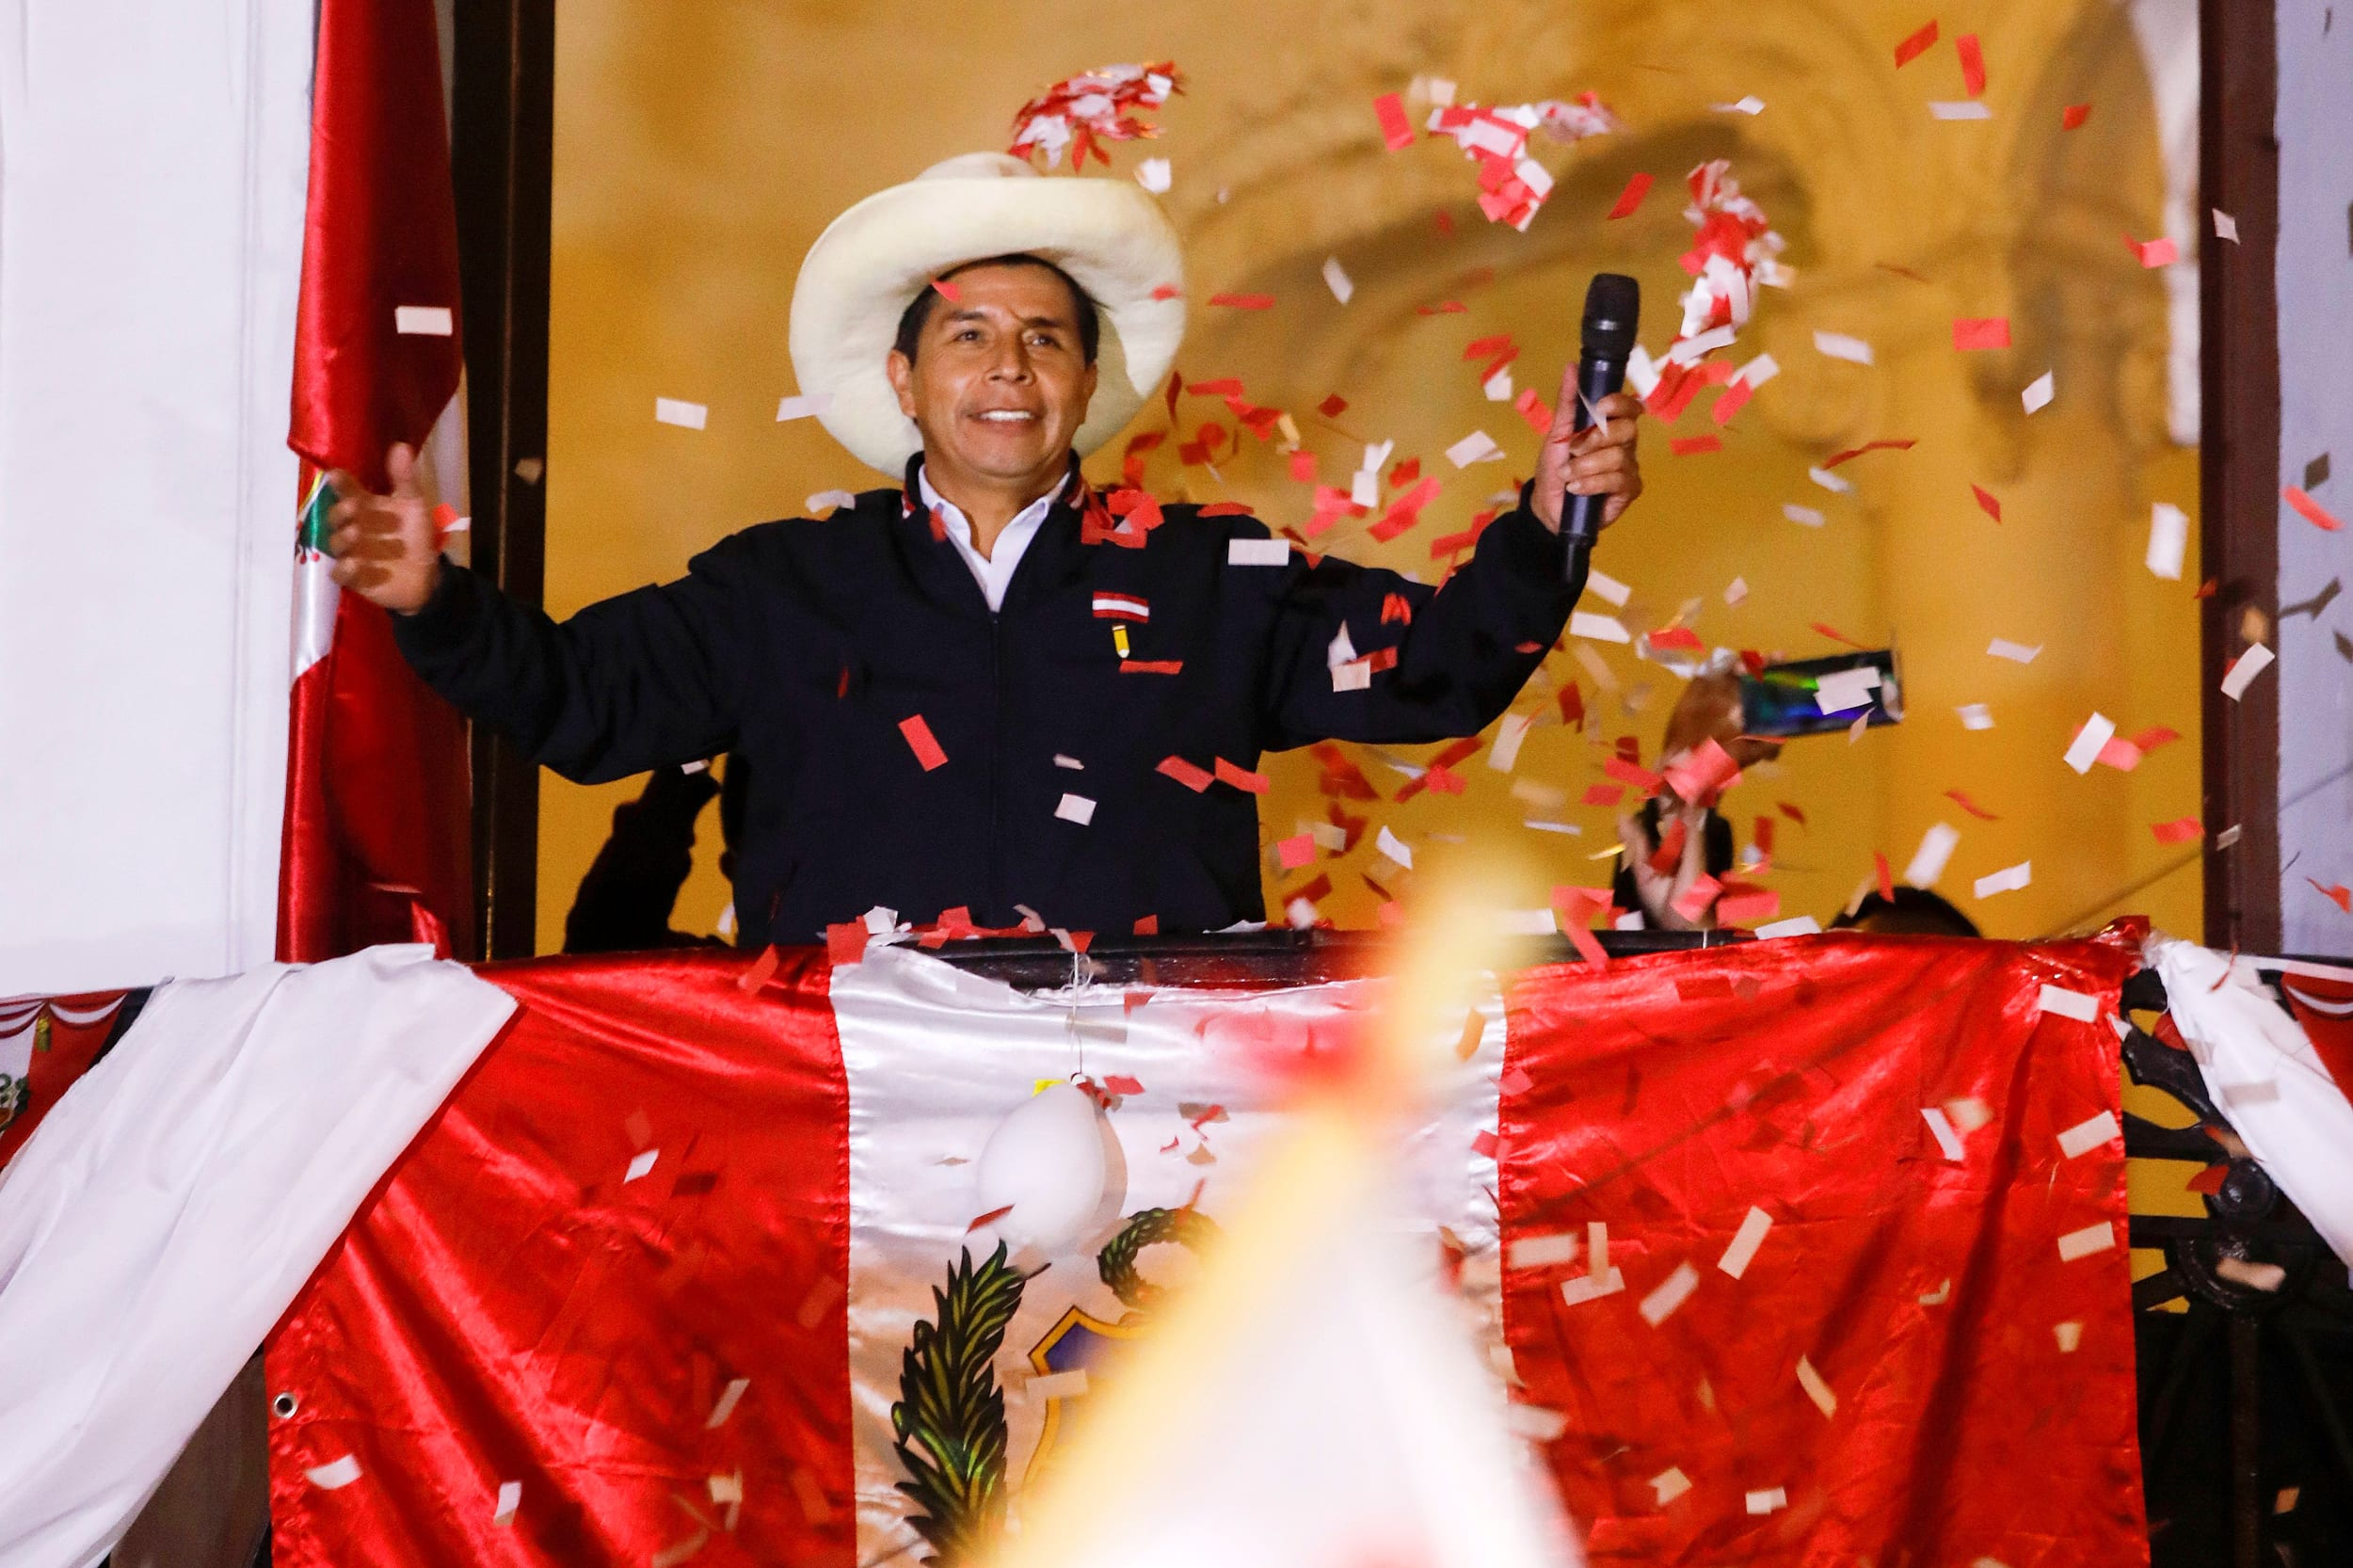 The New President of Peru